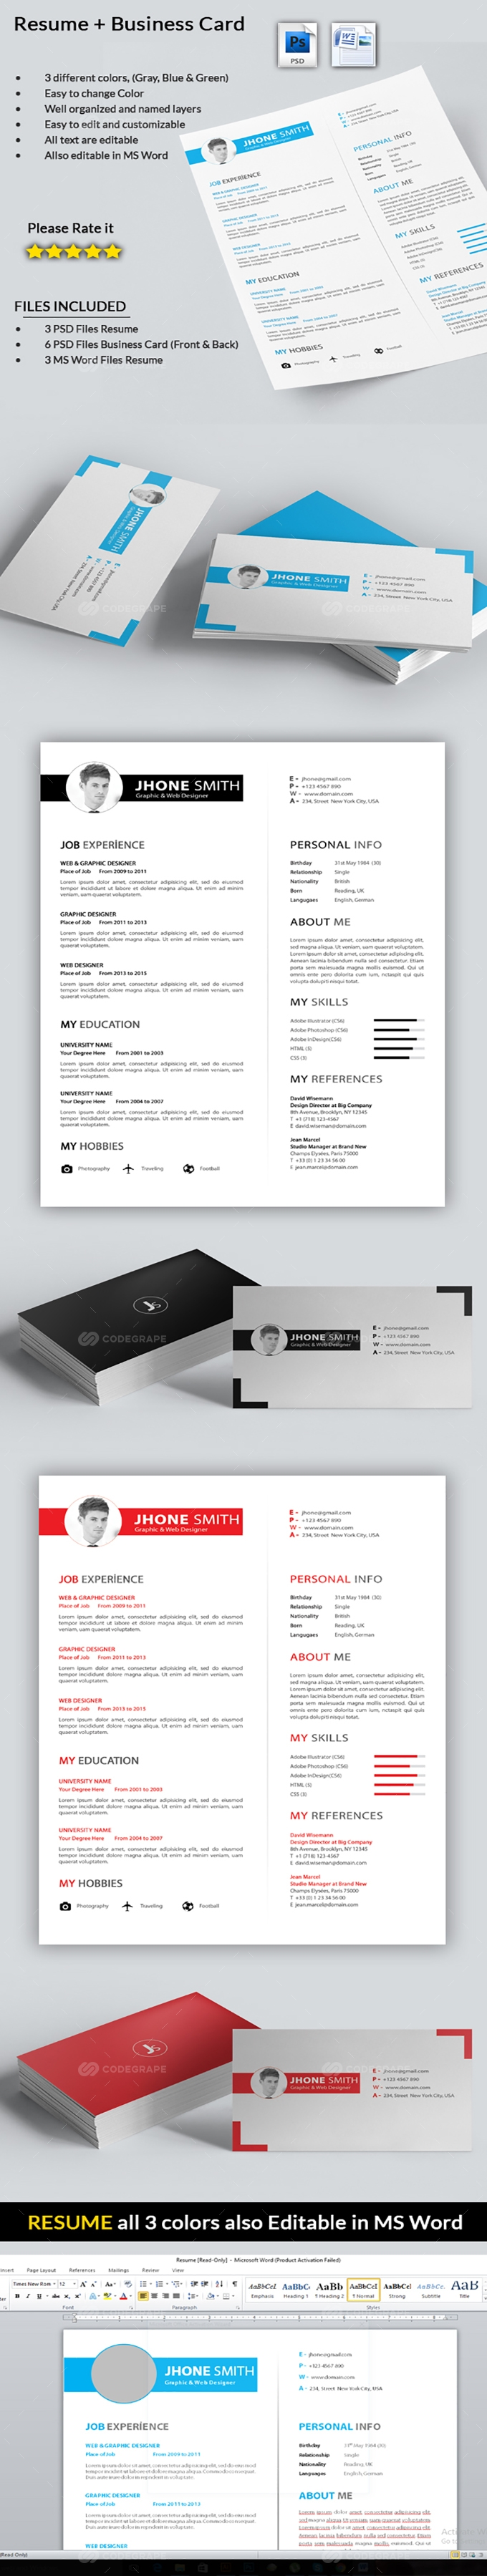 Resume with Business Card - Print | CodeGrape